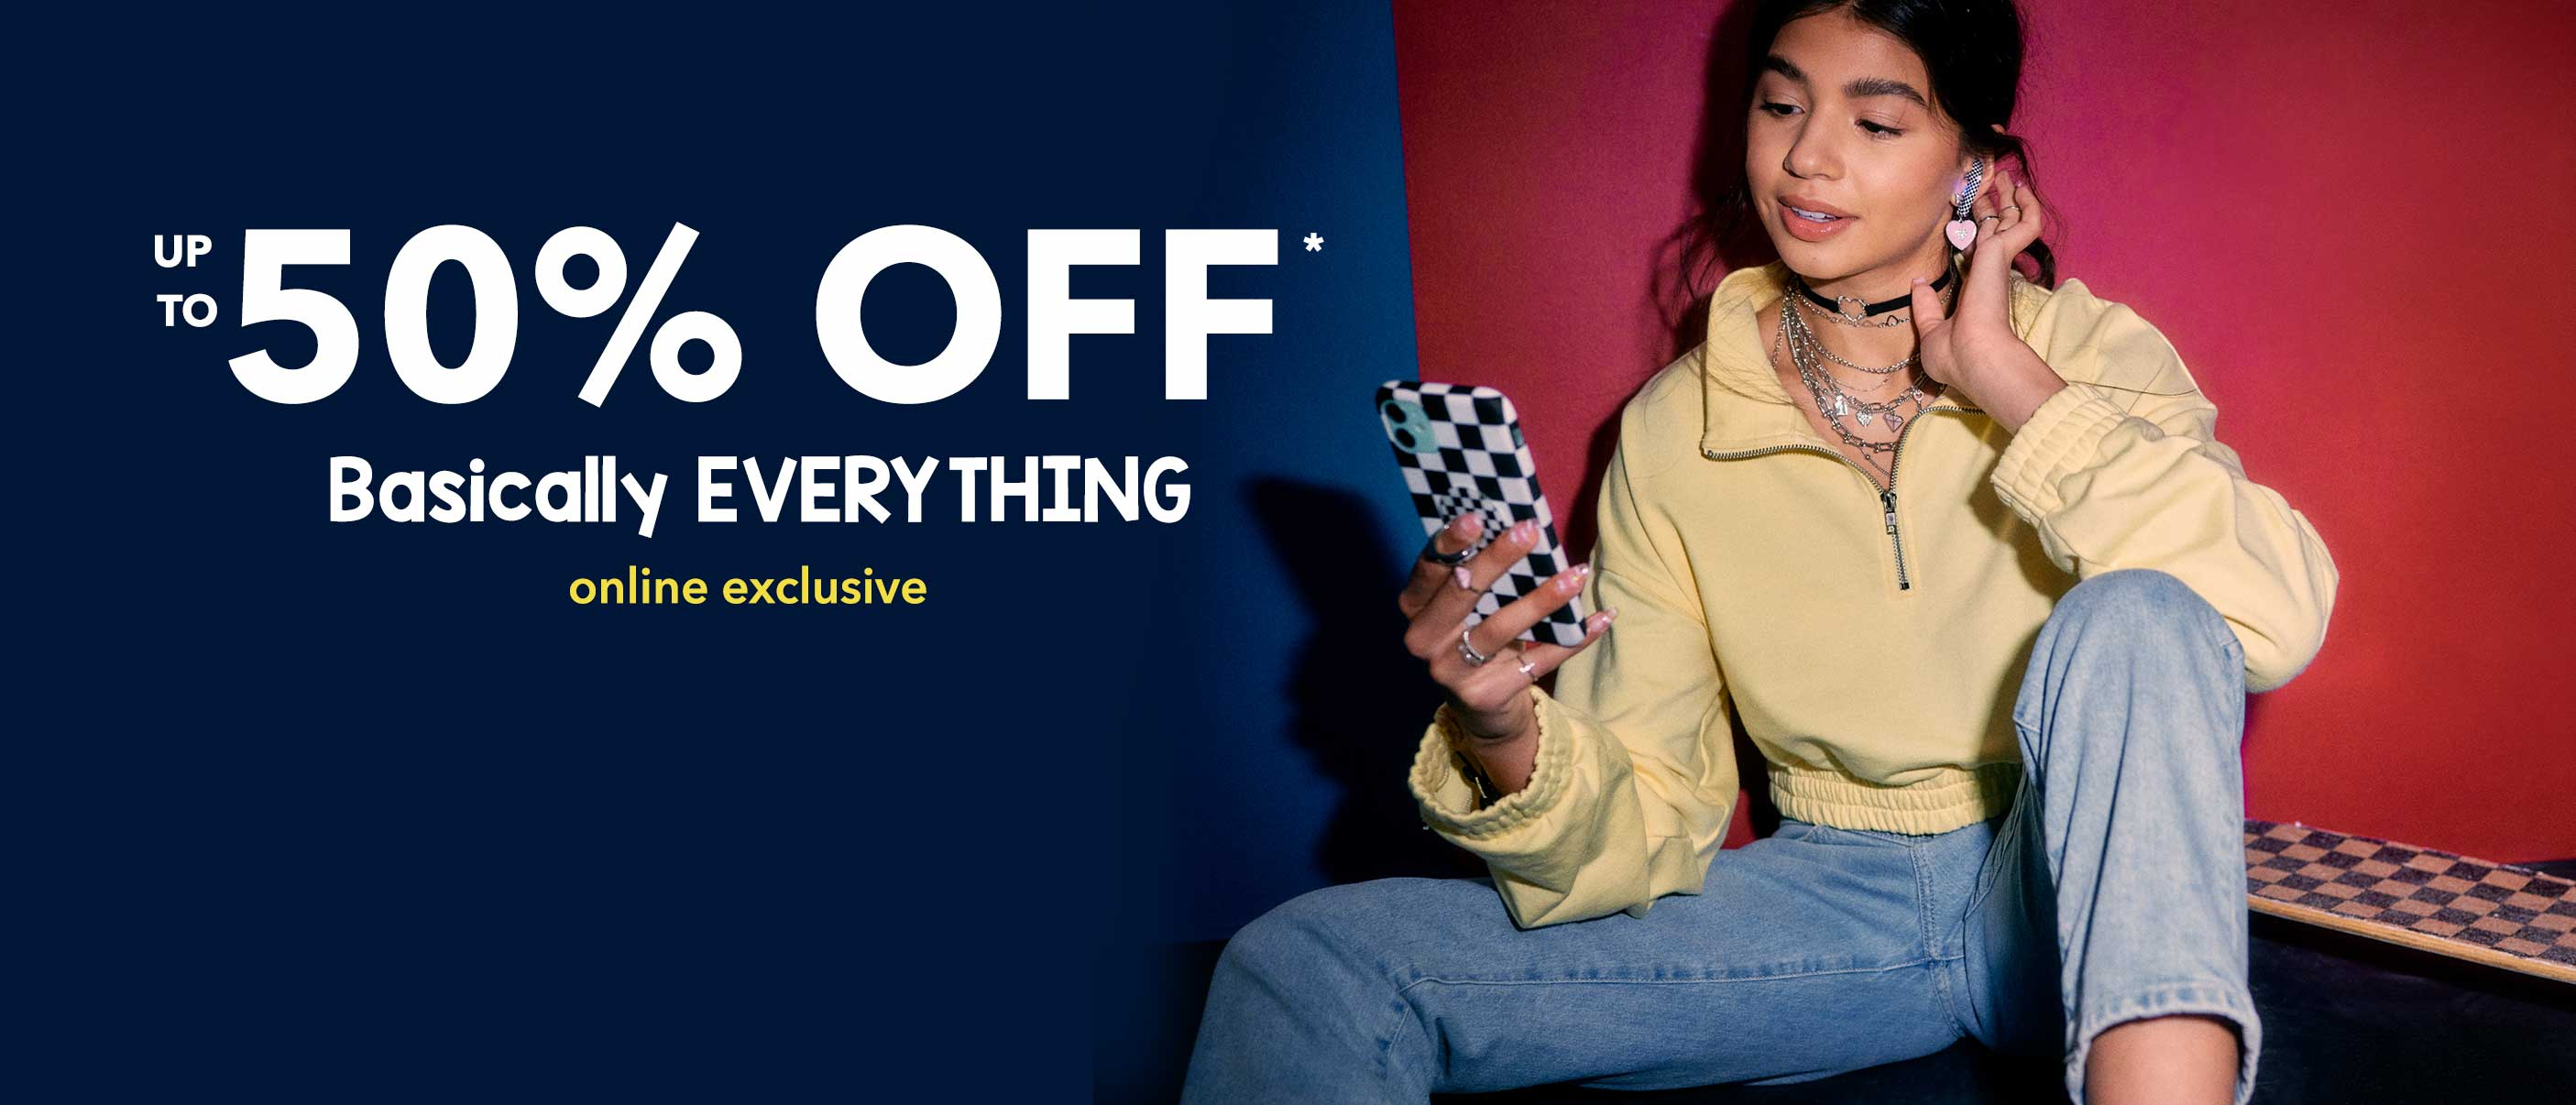 Announcing: Our Big Weekend Sale! Up to 50% Off Almost Everything. Online Only, Ends 26/07.